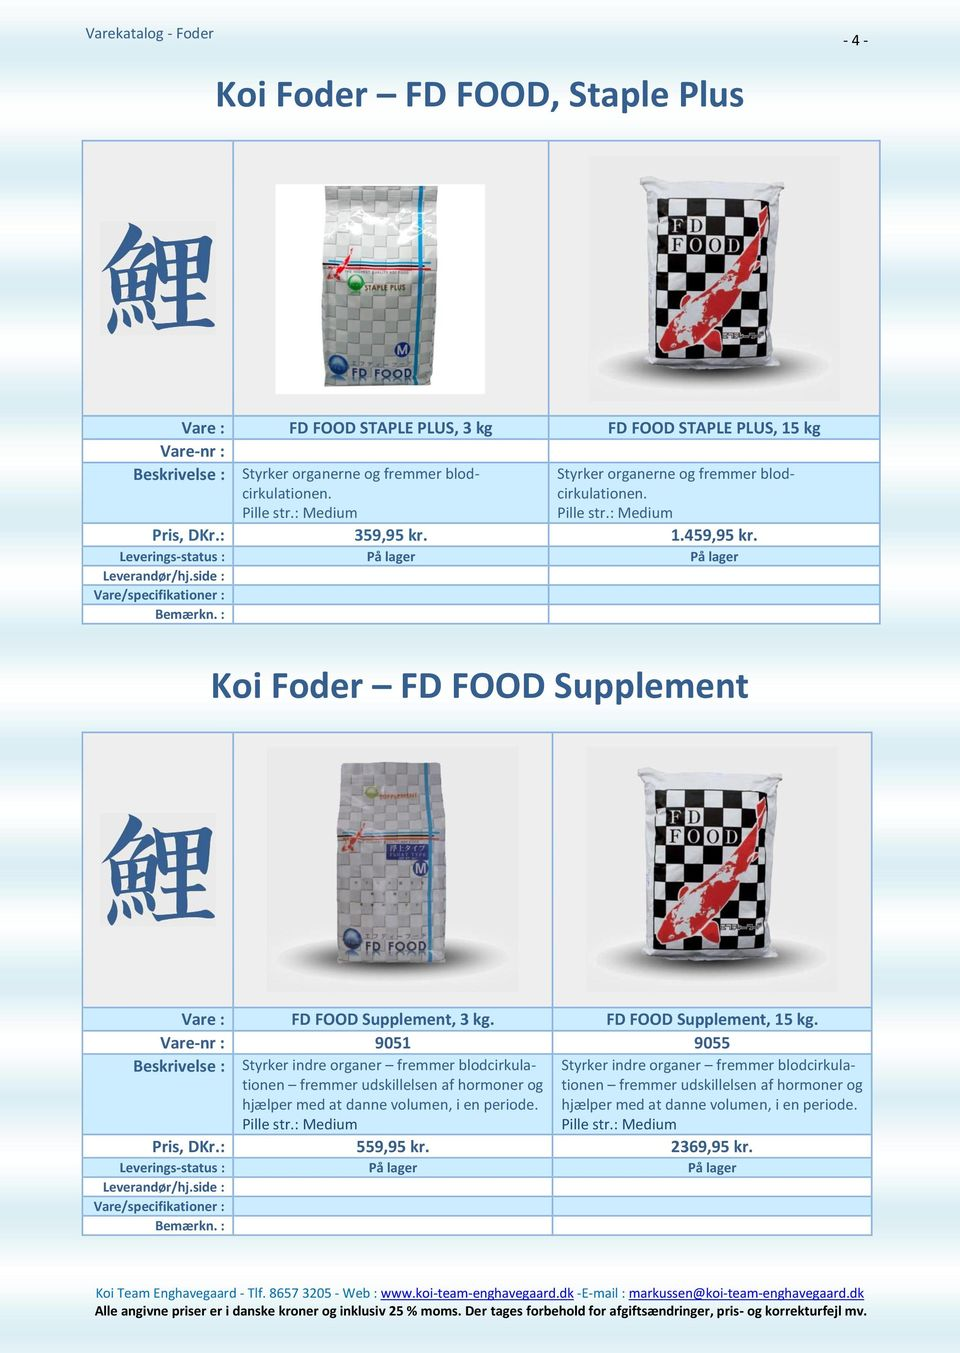 FD FOOD Supplement, 15 kg.